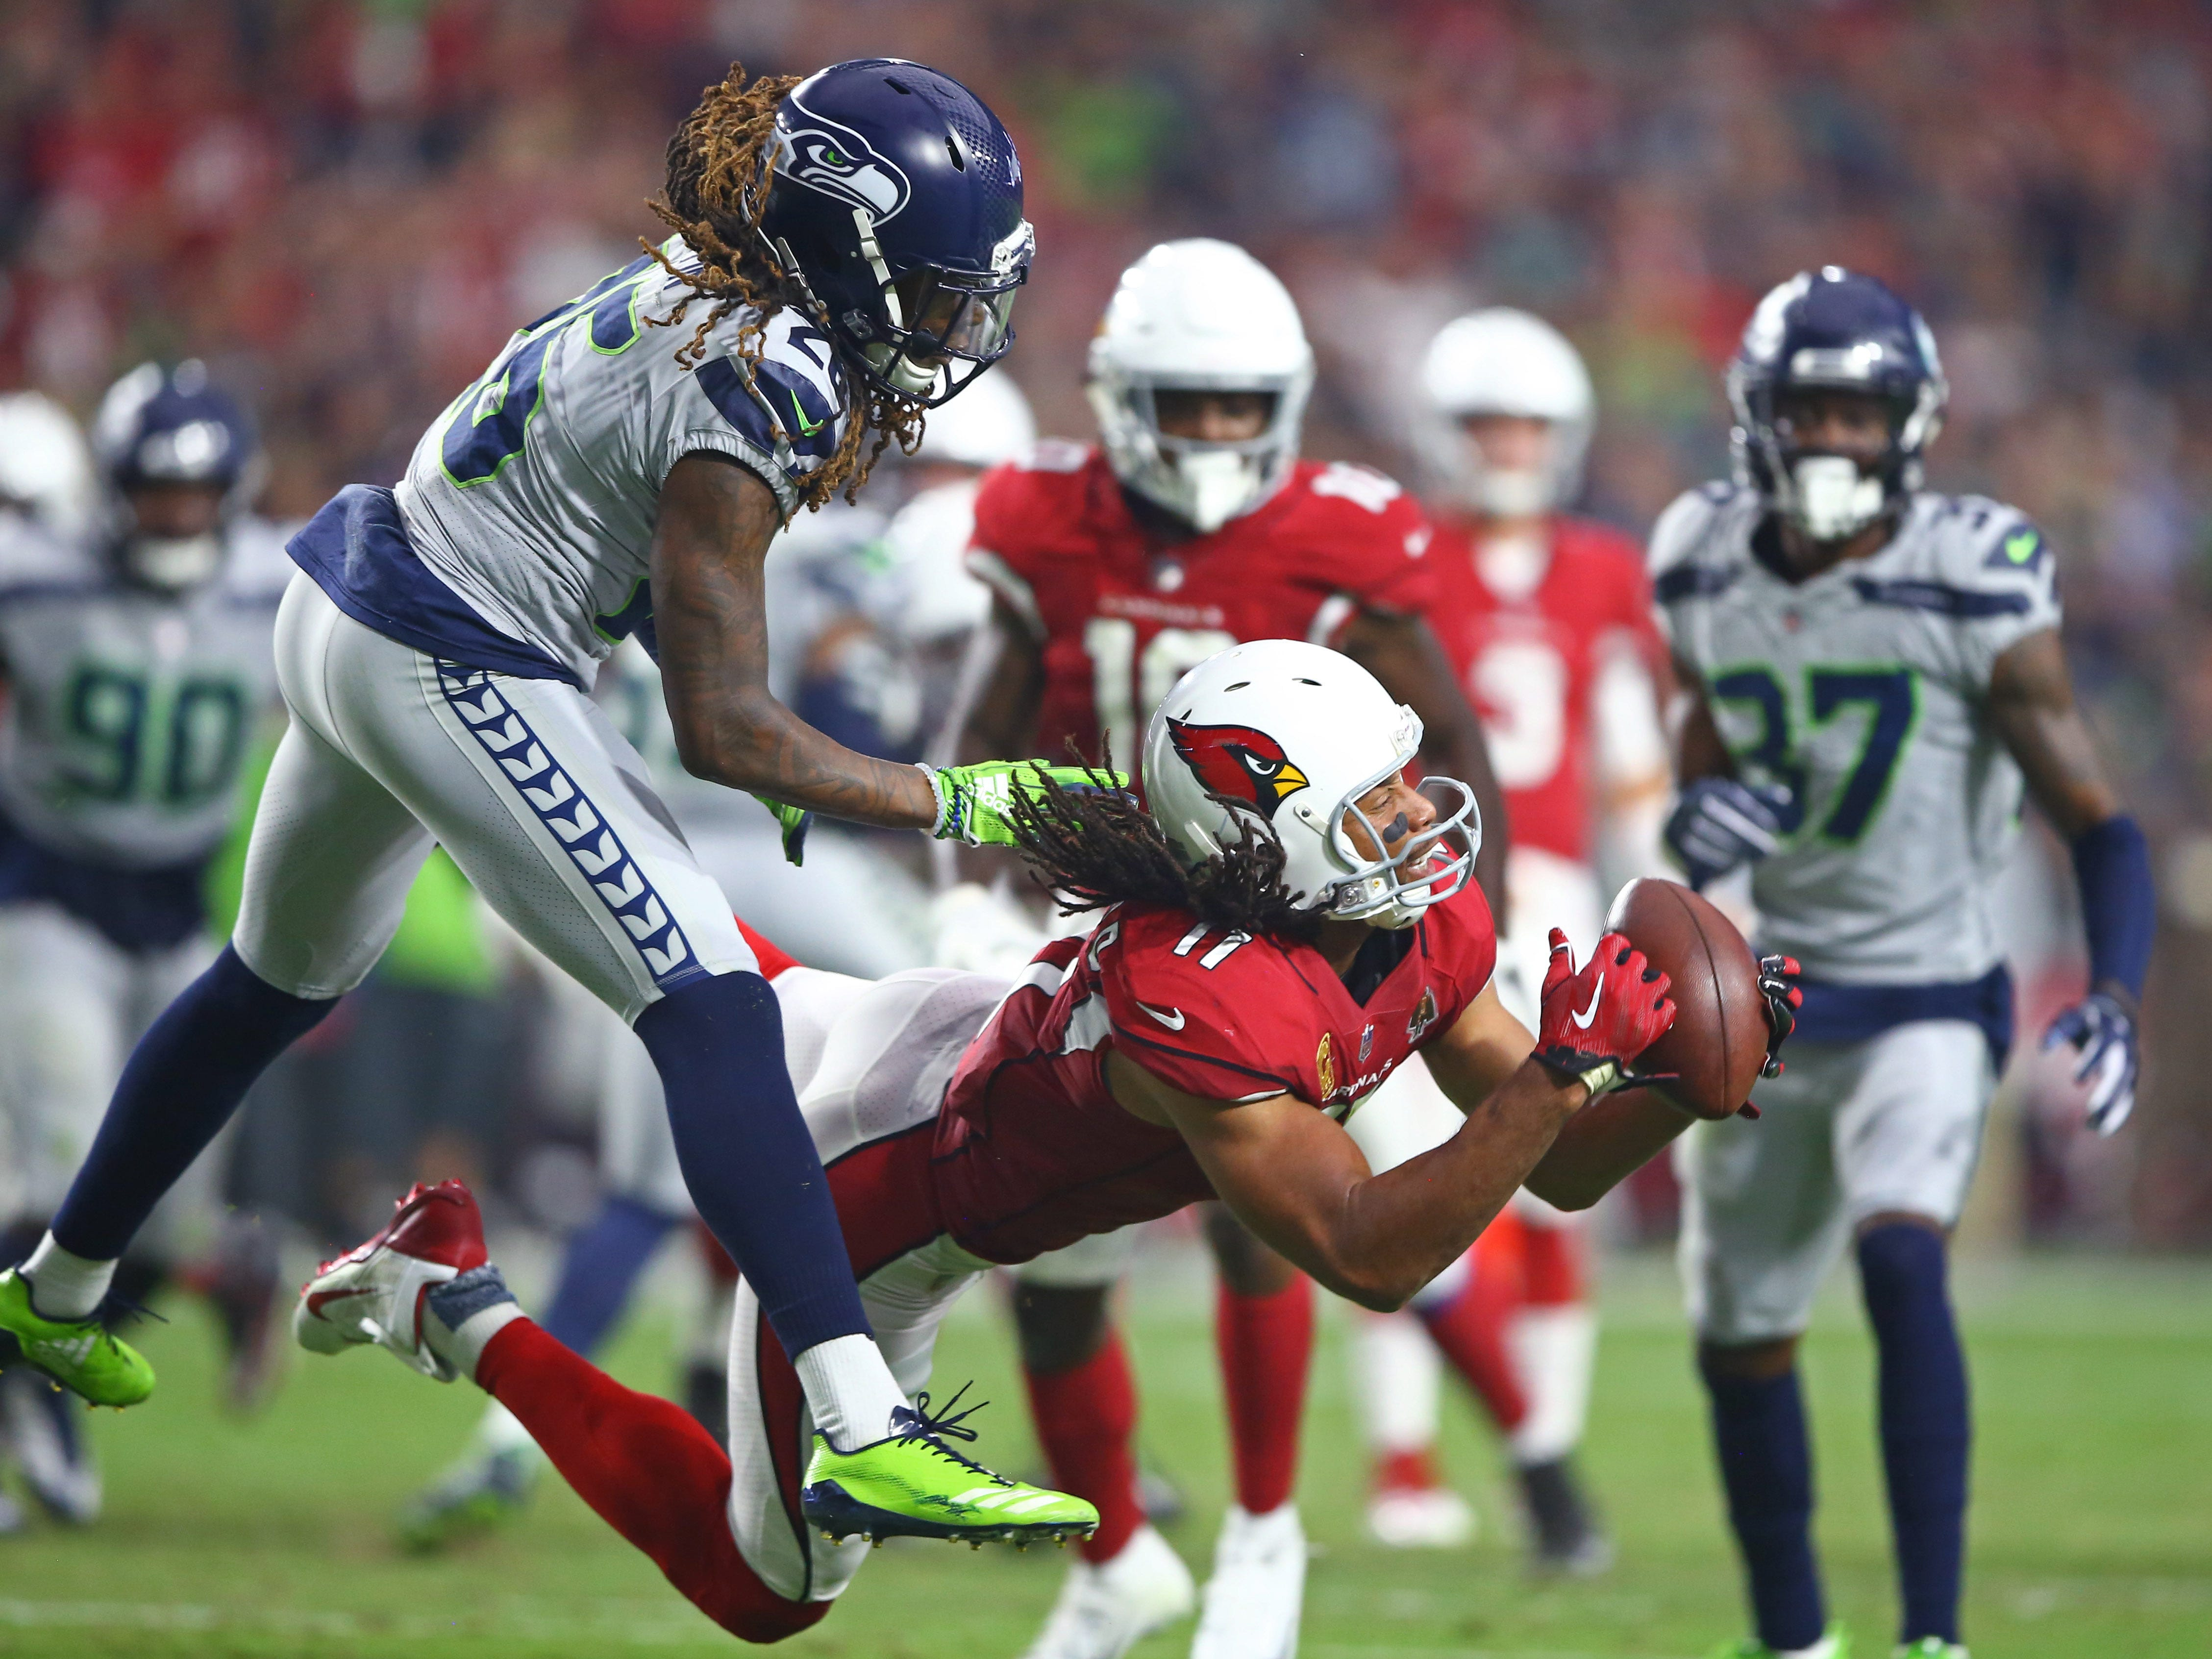 Arizona Cardinals wide receiver Larry Fitzgerald makes a diving catch against Seattle Seahawks cornerback Shaquill Griffin in the second quarter at State Farm Stadium.